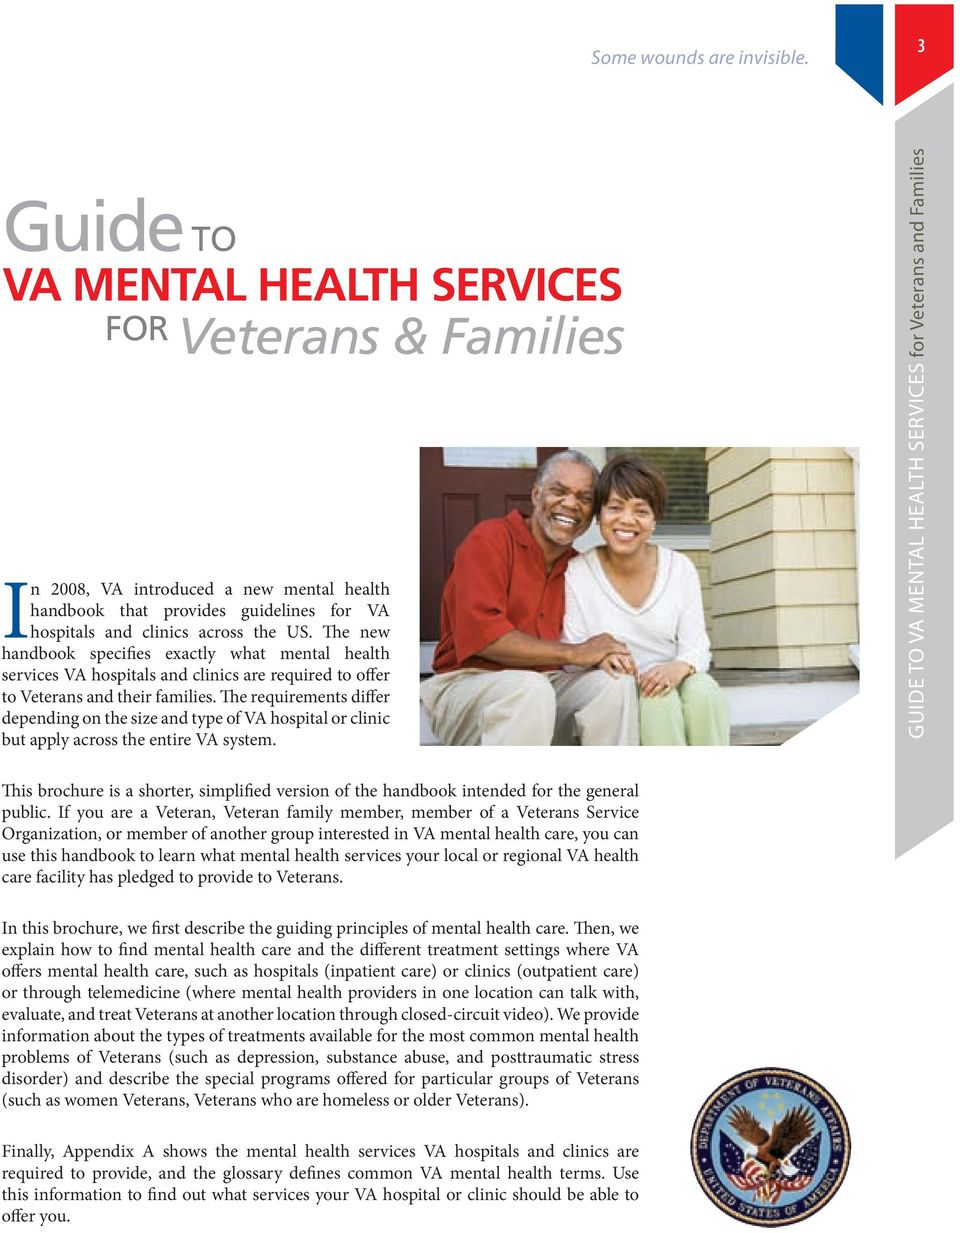 The new handbook specifies exactly what mental health services VA hospitals and clinics are required to offer to Veterans and their families.